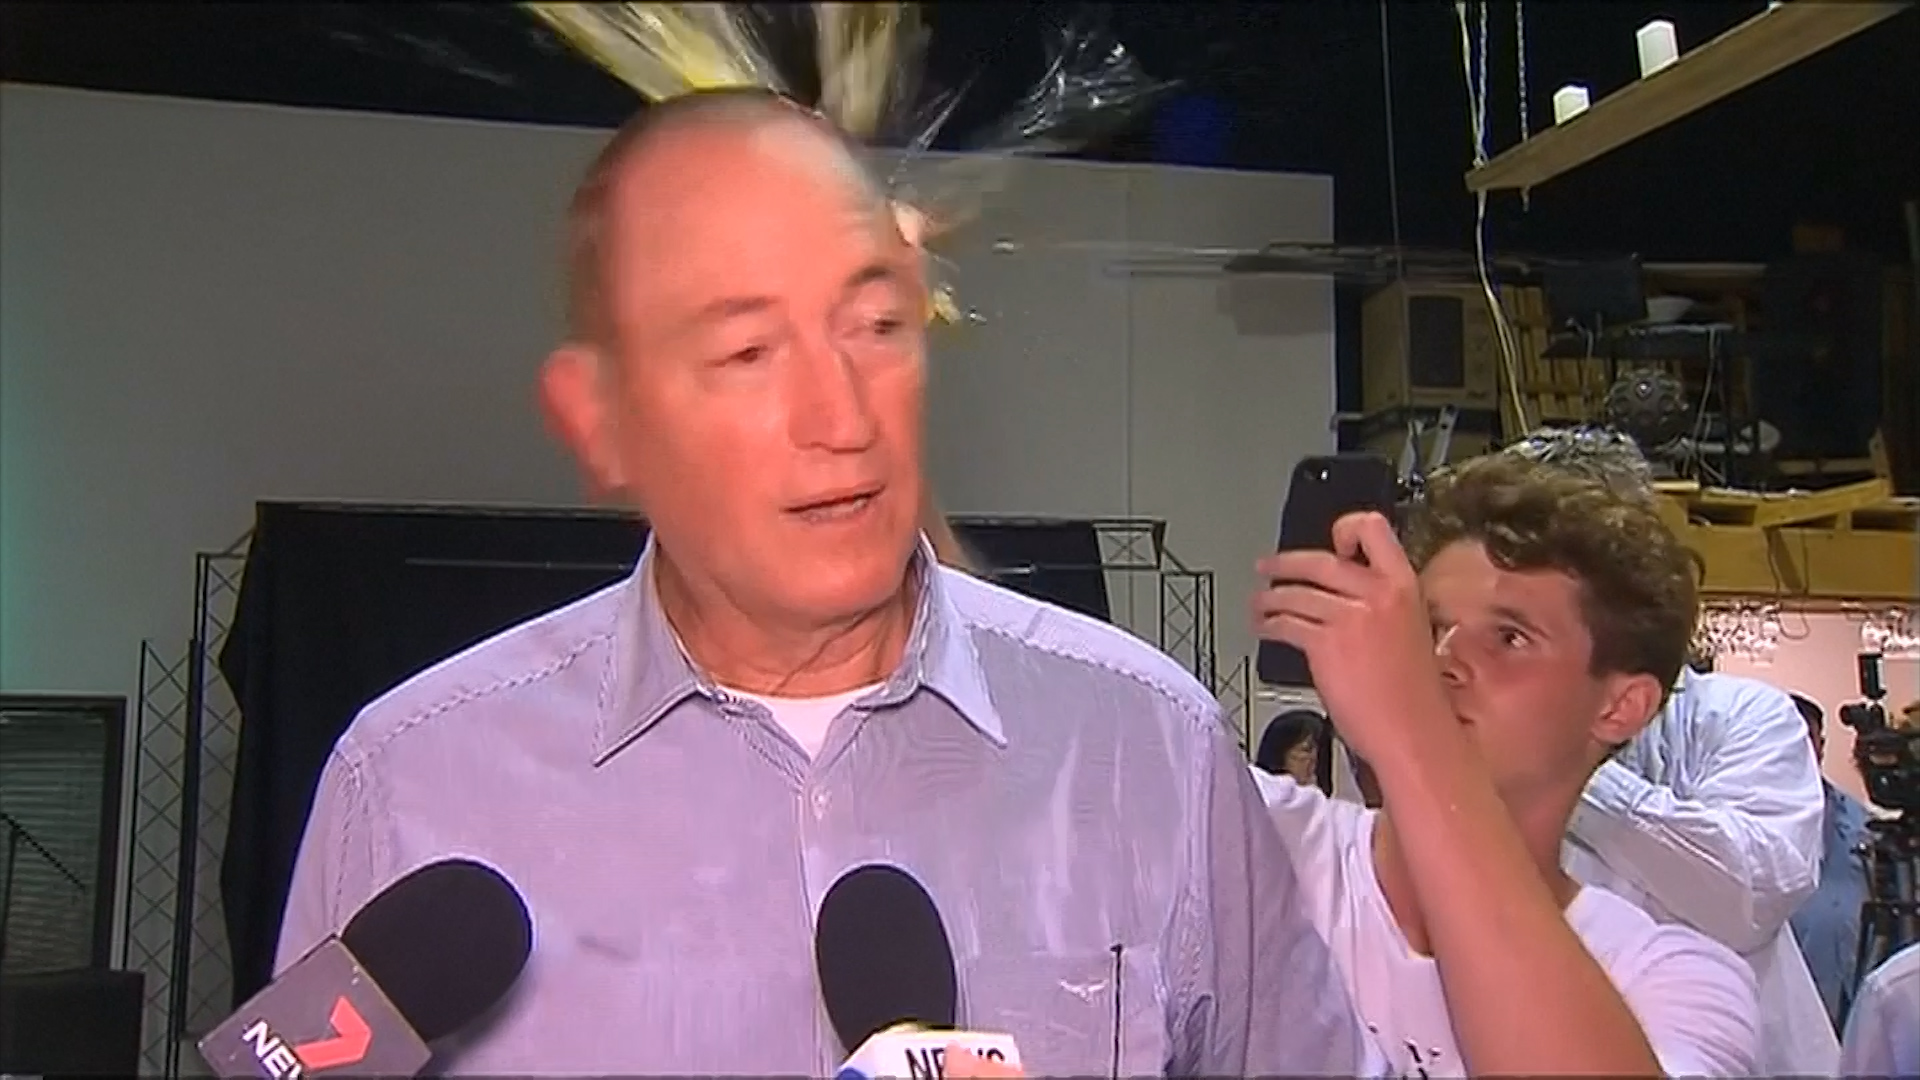 'Egg Boy' Will Send GoFundMe Money to Christchurch Shooting Victims